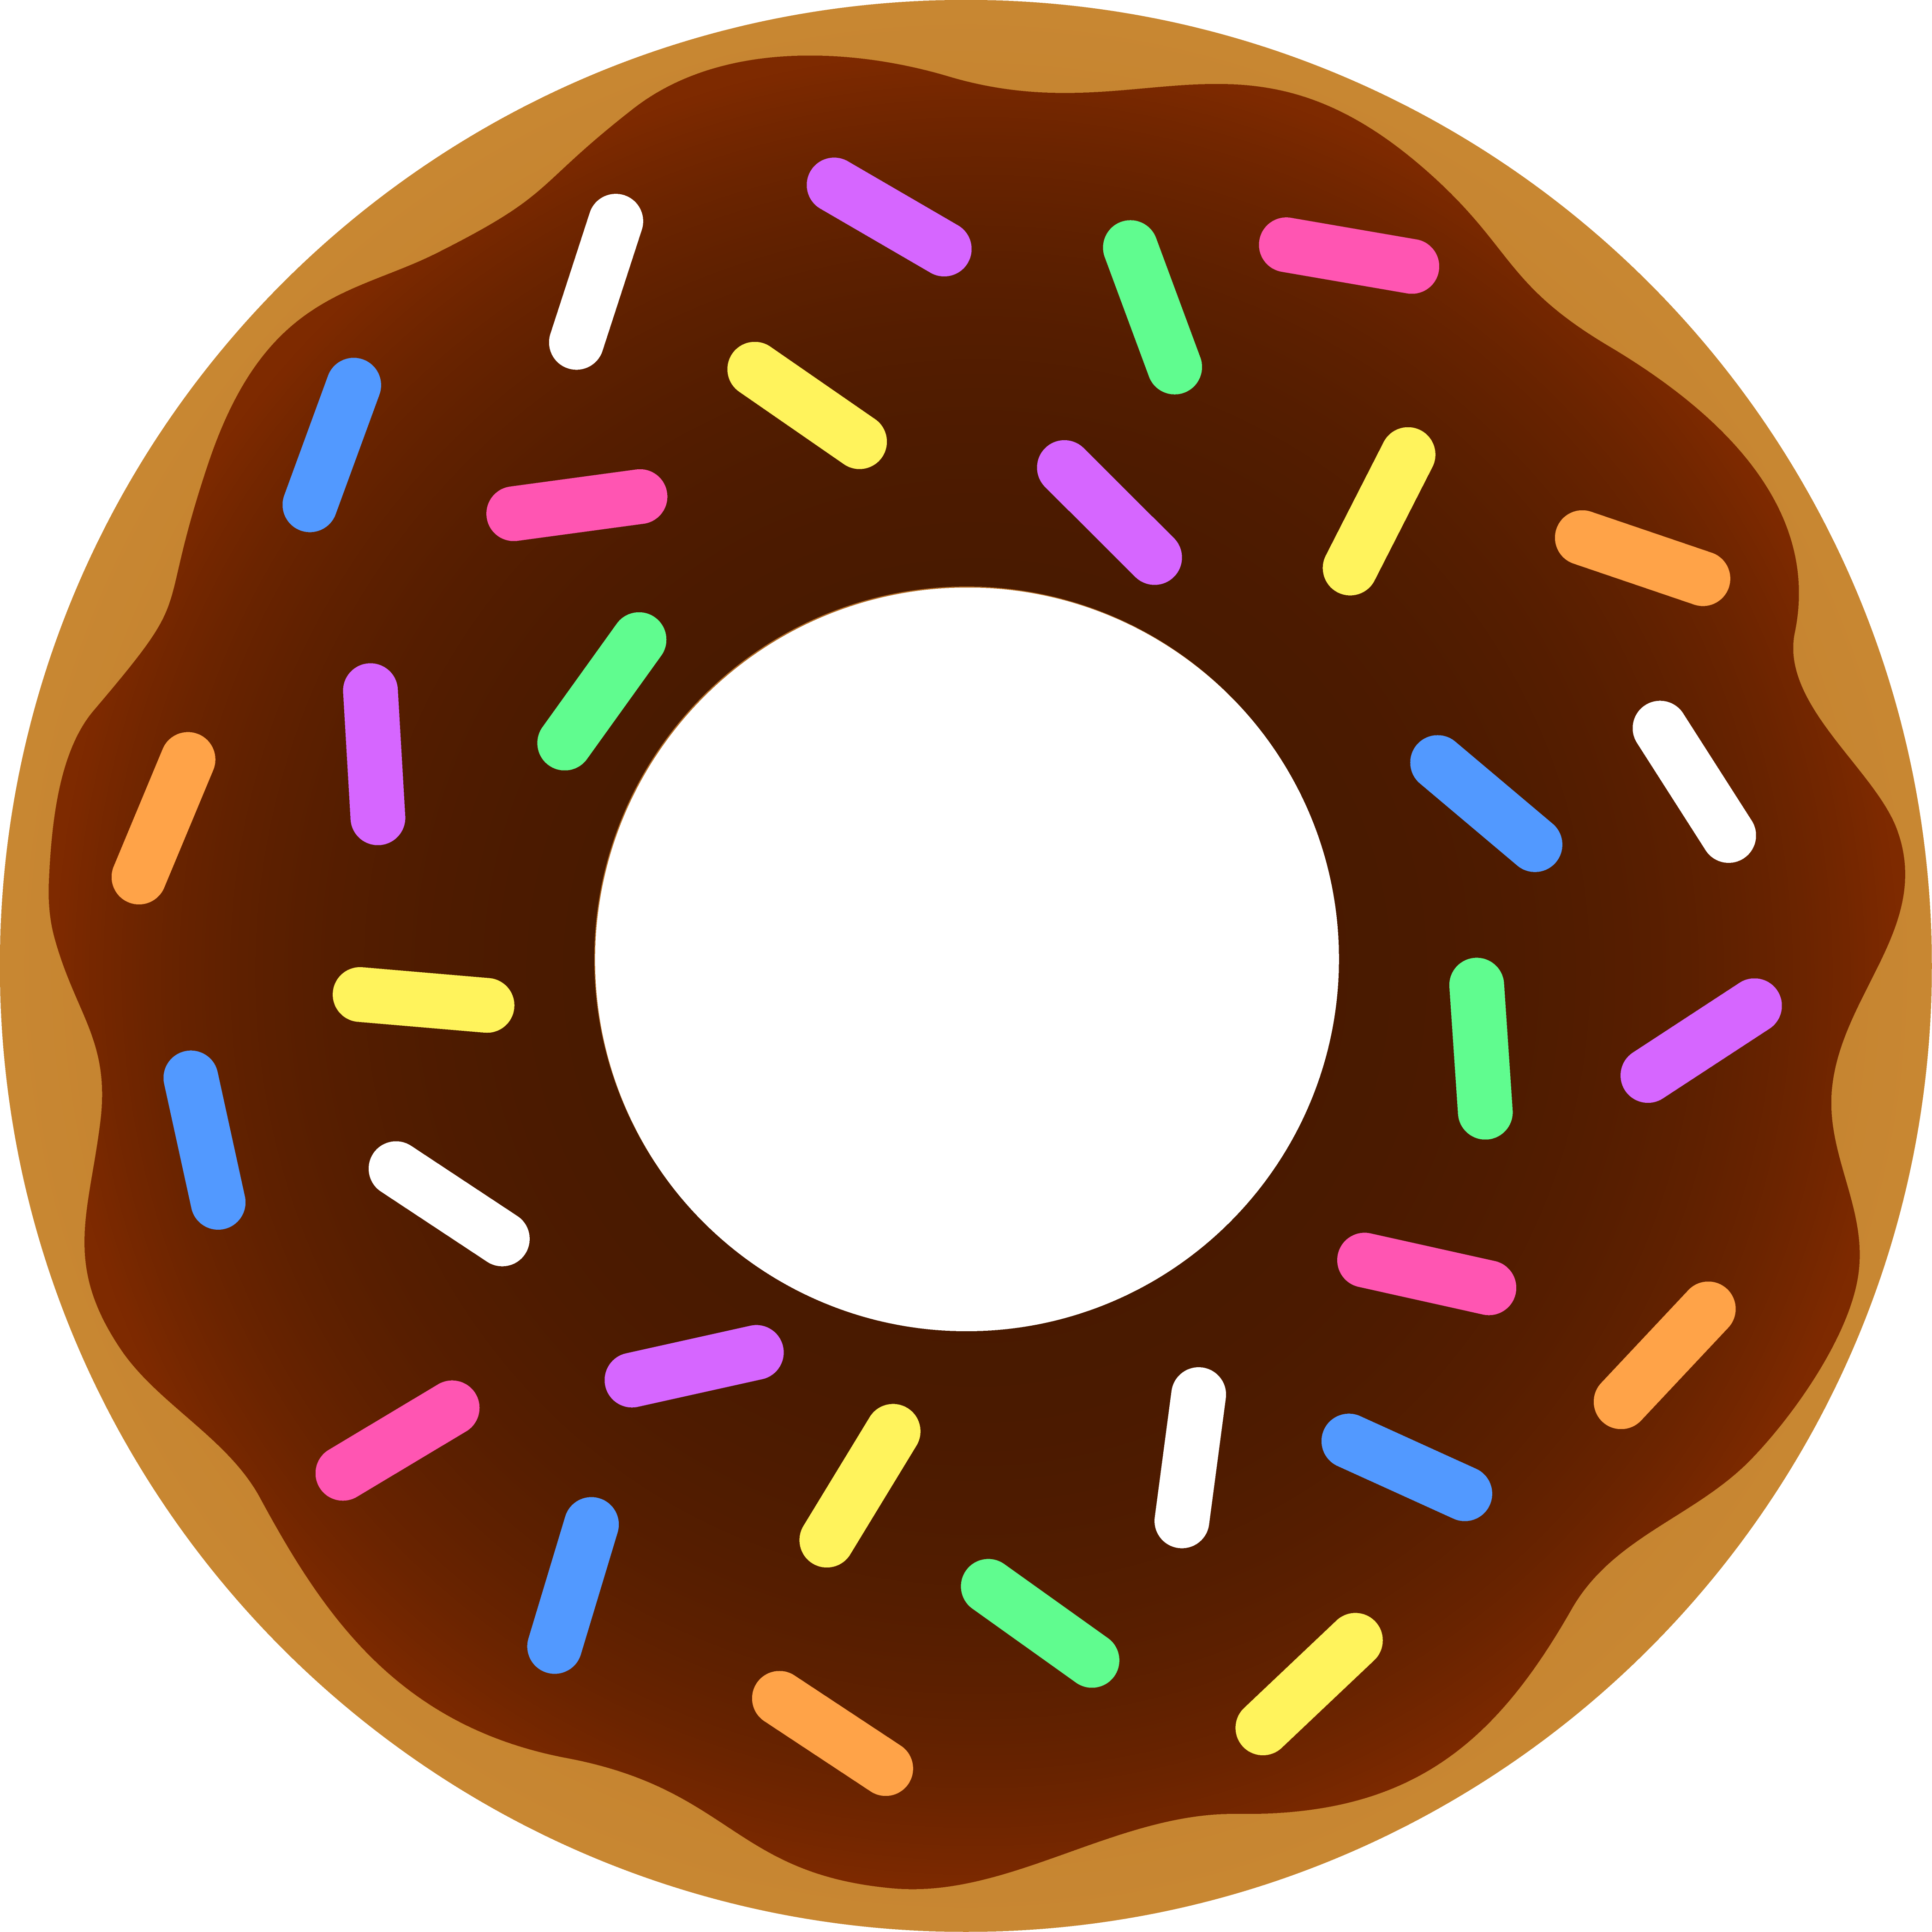 Tumblr png donut. Home pinterest dessert sauces